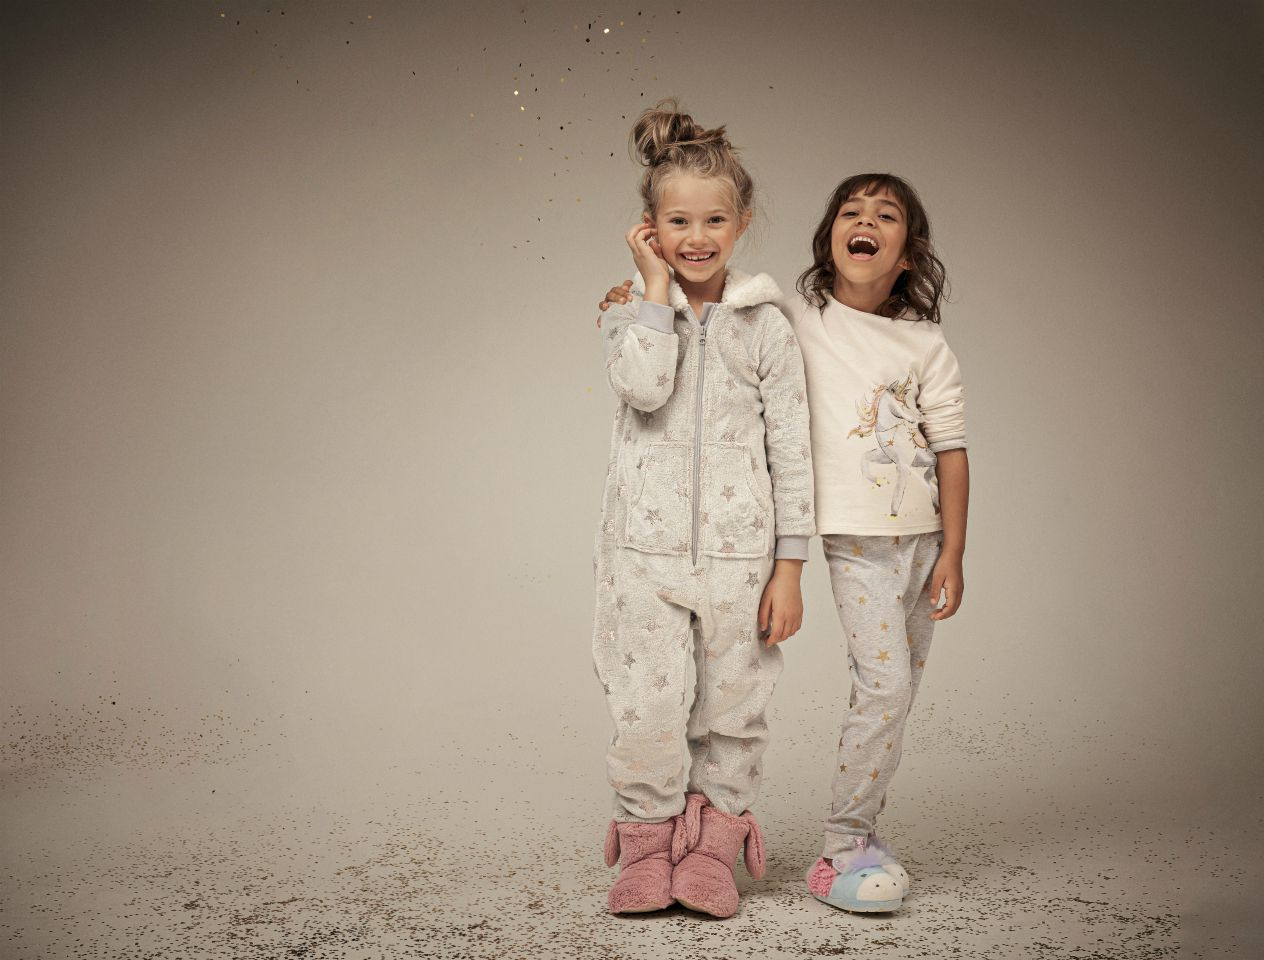 Children's nightwear from John Lewis & Partners